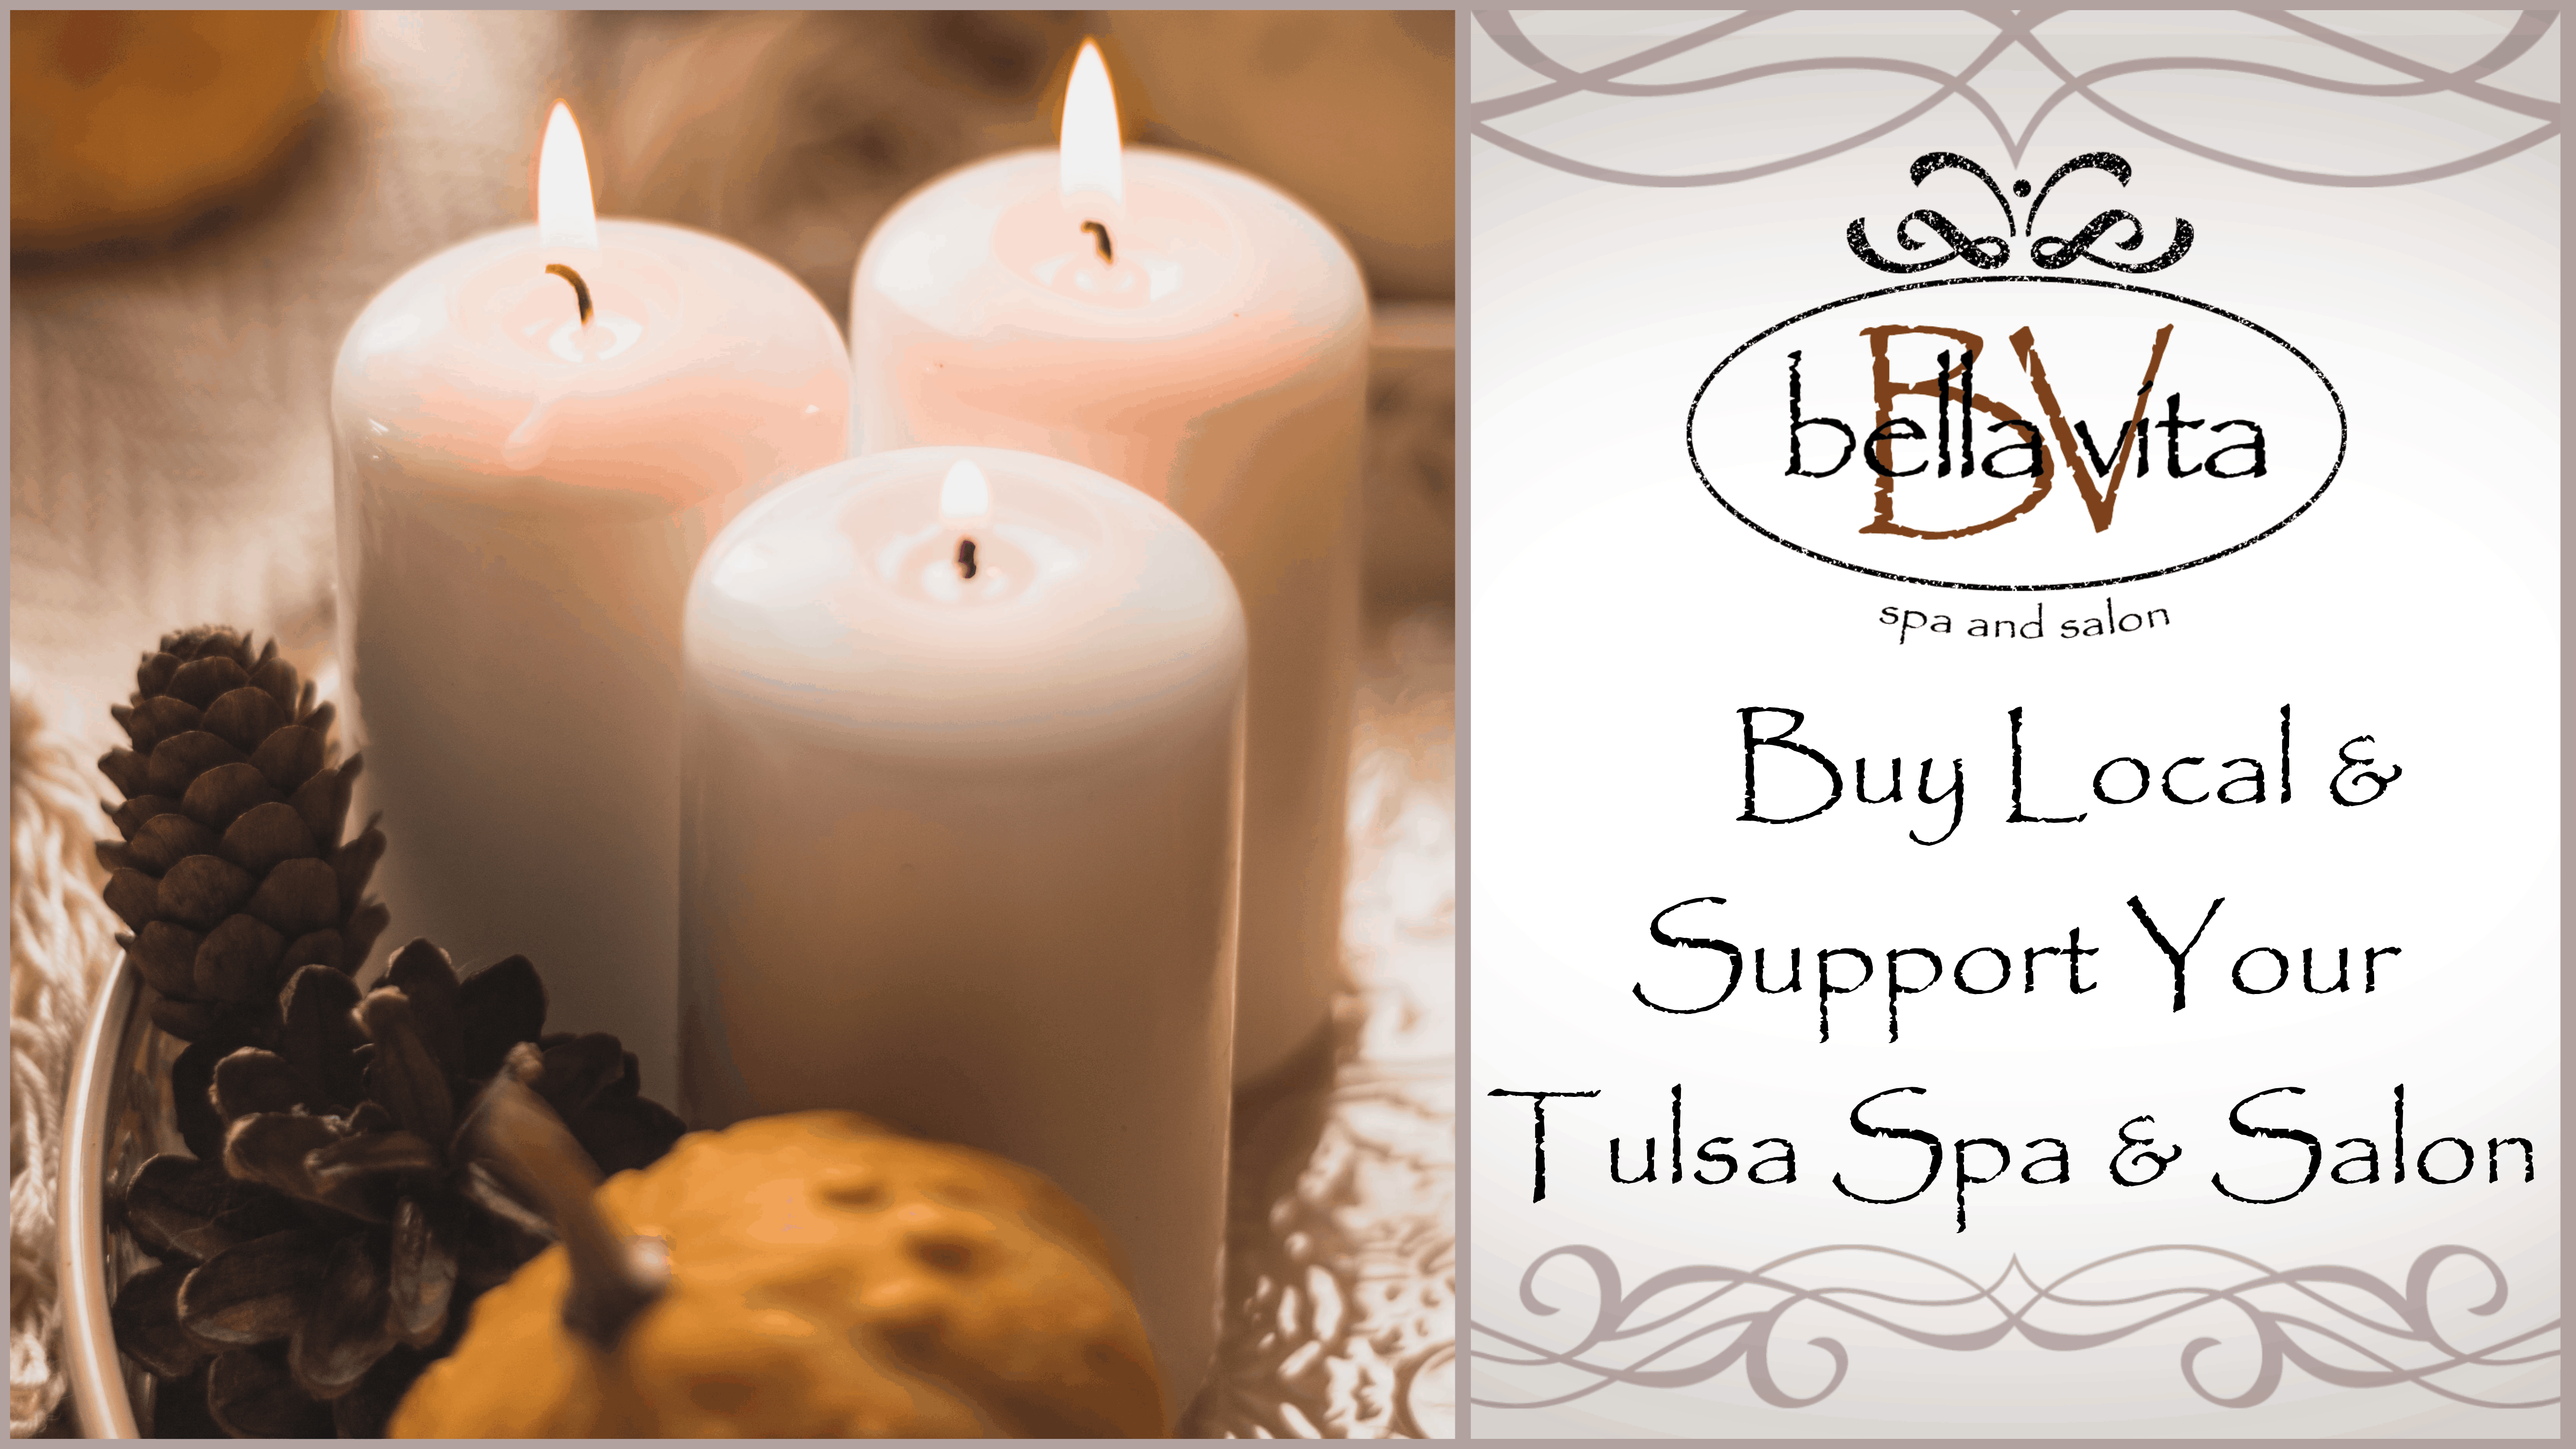 Buy Local & Support Your Tulsa Spa & Salon